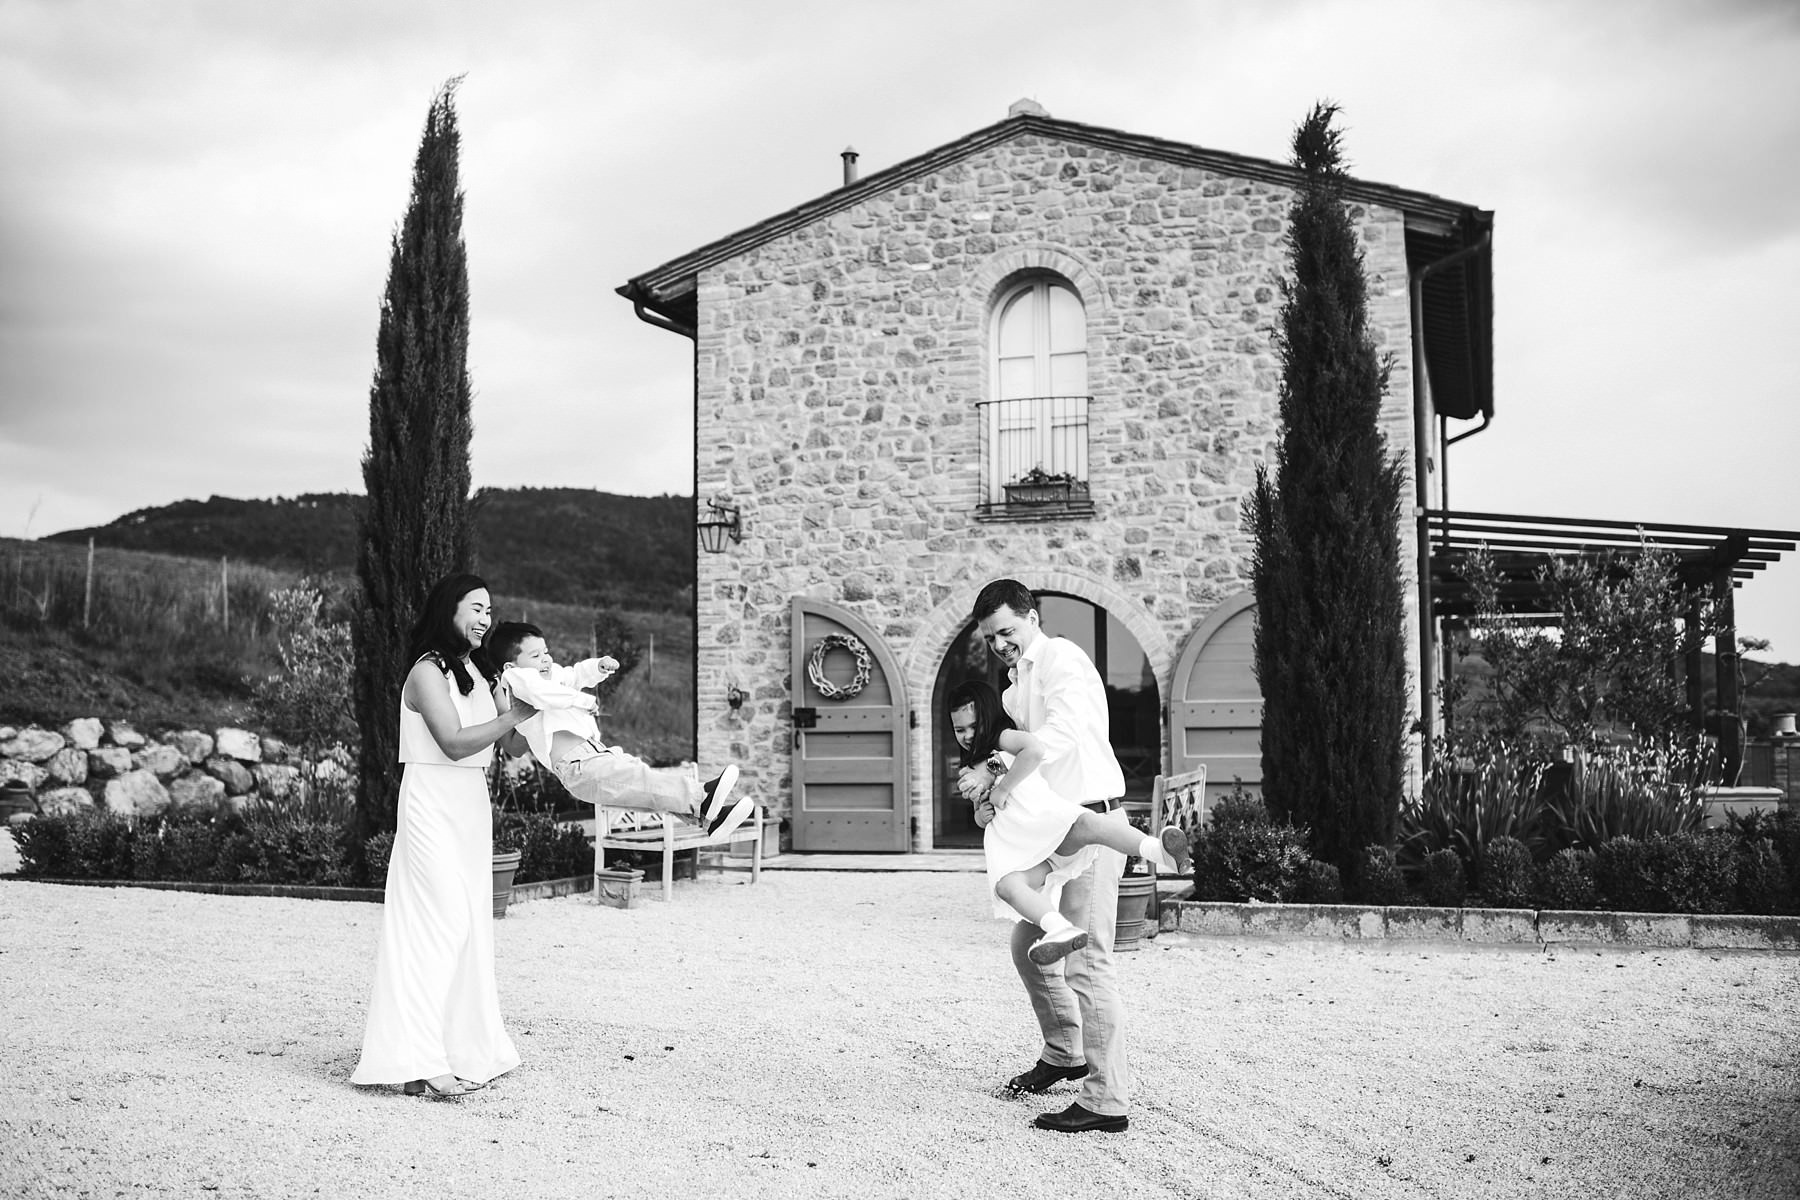 Lovely family photo session in Tuscany countryside for a couple in vacation celebrating 10 years of marriage anniversary